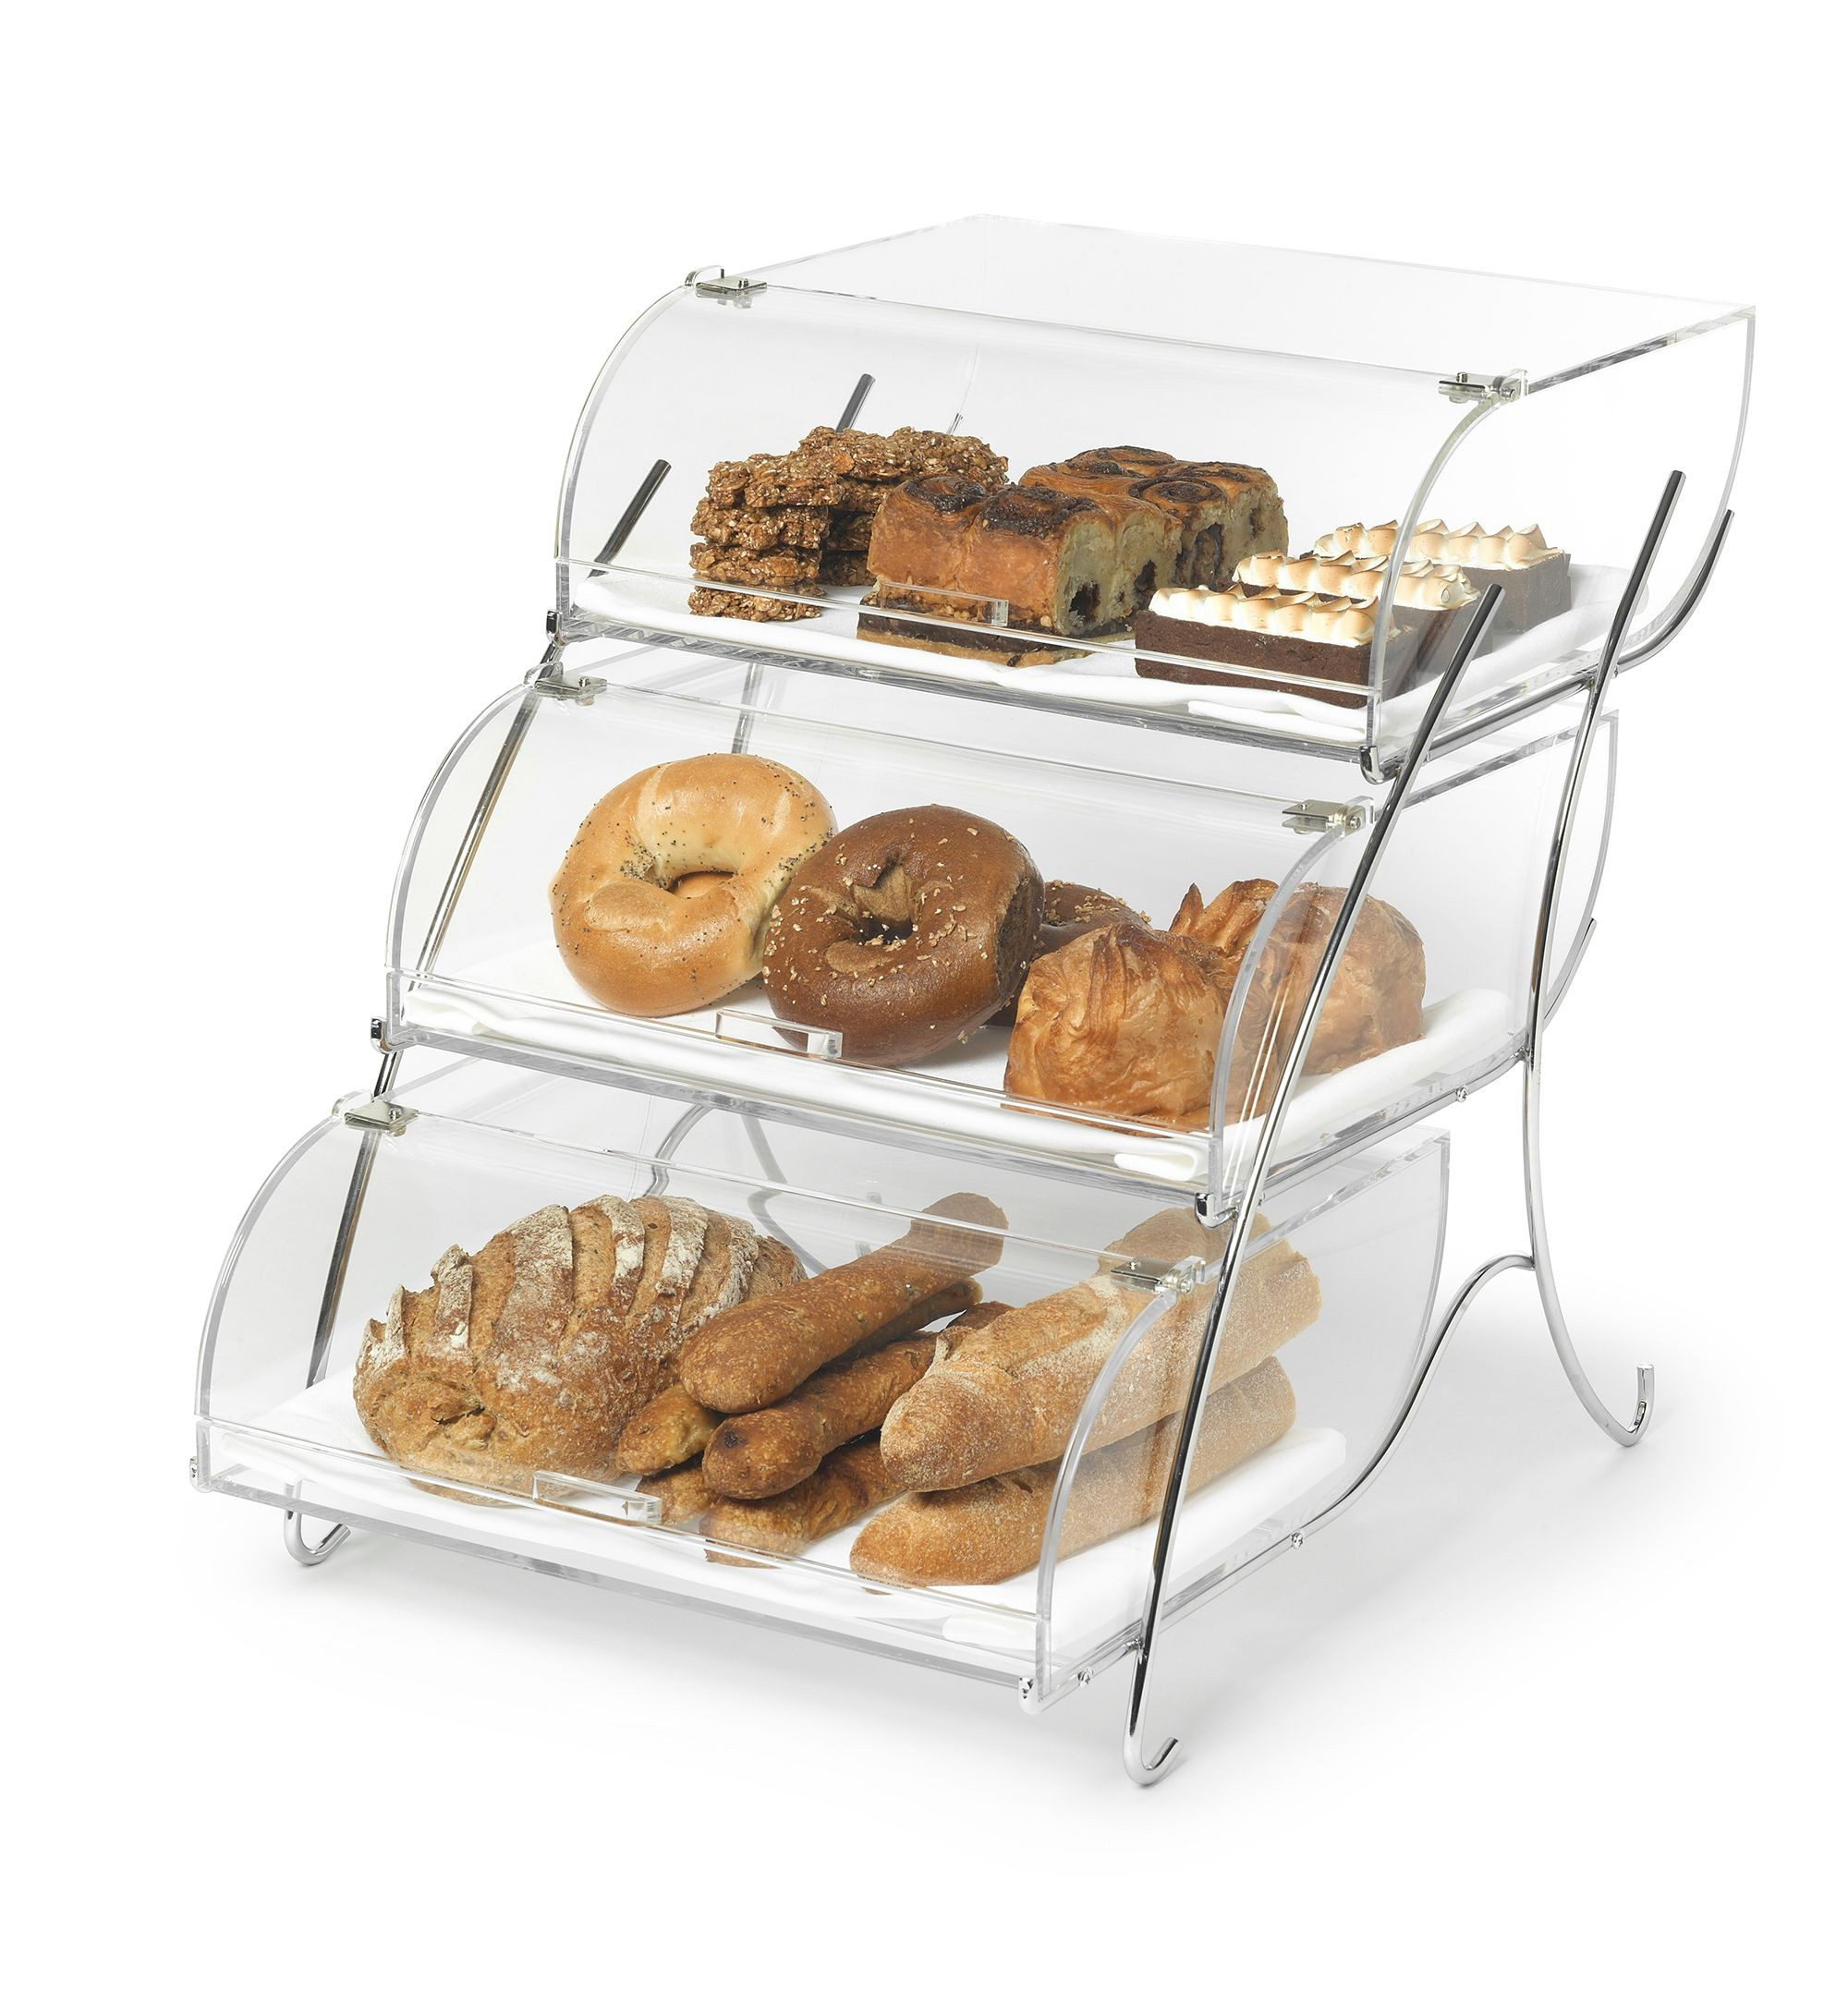 pastry style countertops edgarpoe refrigerated display inspirational cabinets of case new with chilled portable countertop ines net